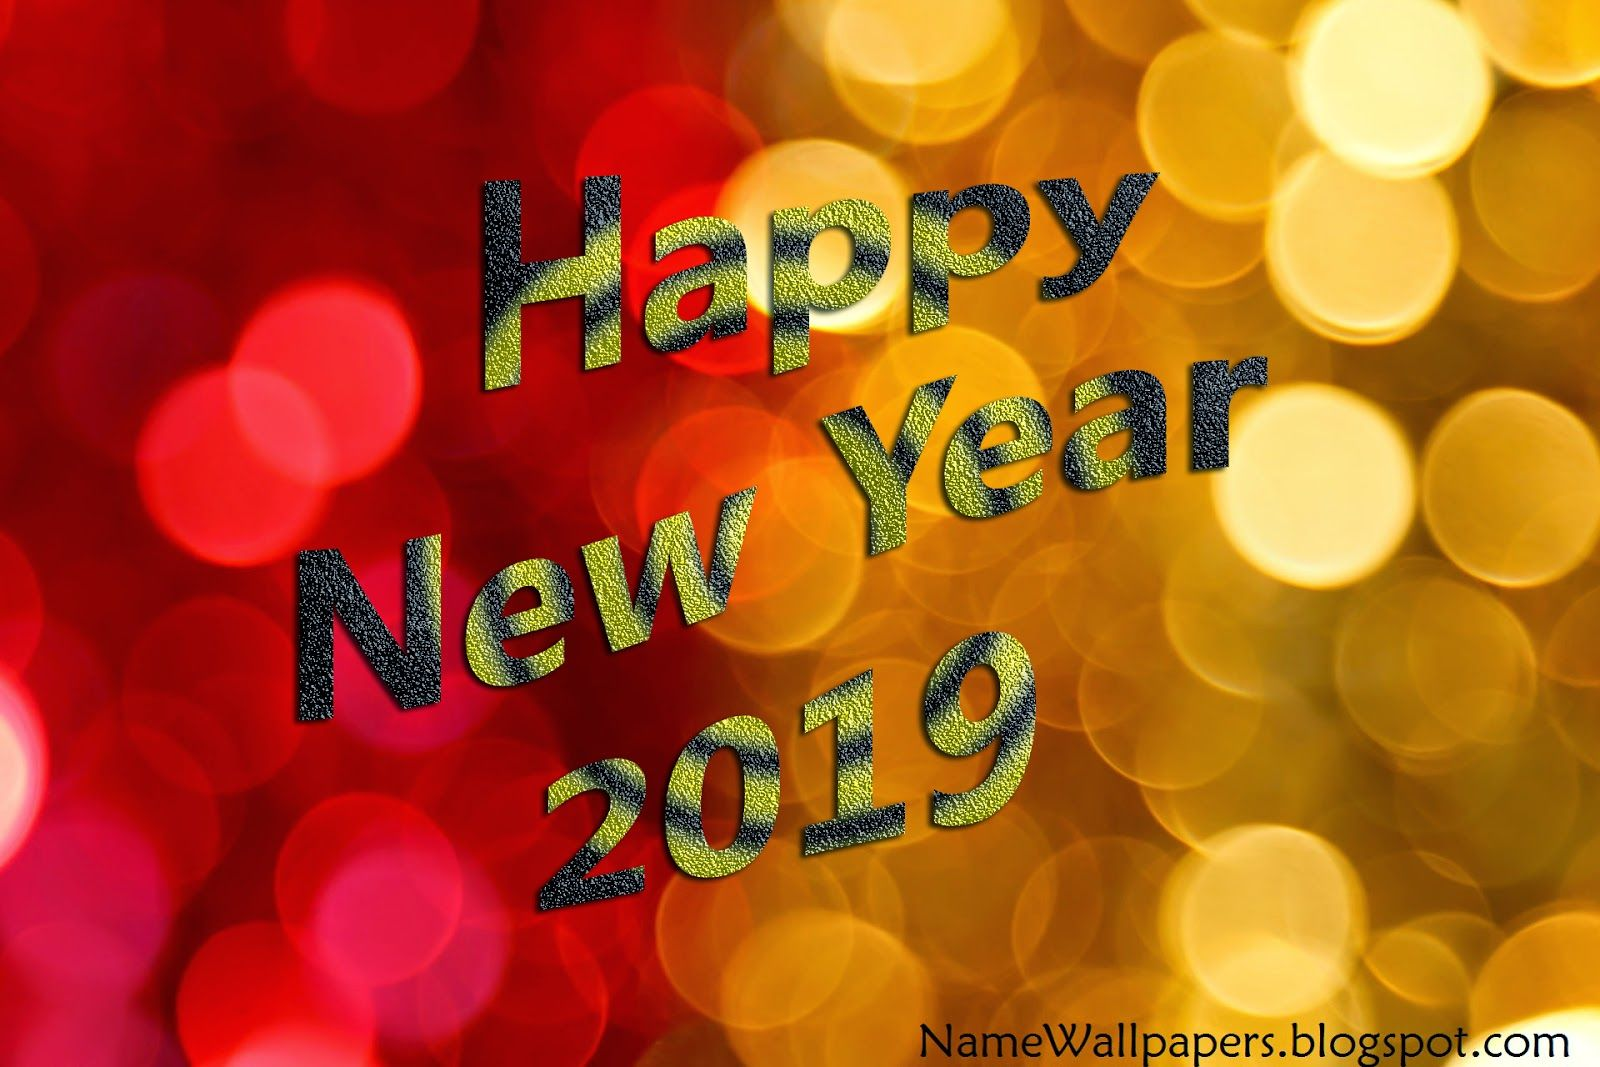 Happy New Year 2019 Wallpaper Happy New Year Images Happy New Year 2017 Wallpapers Happy New Year Wallpaper